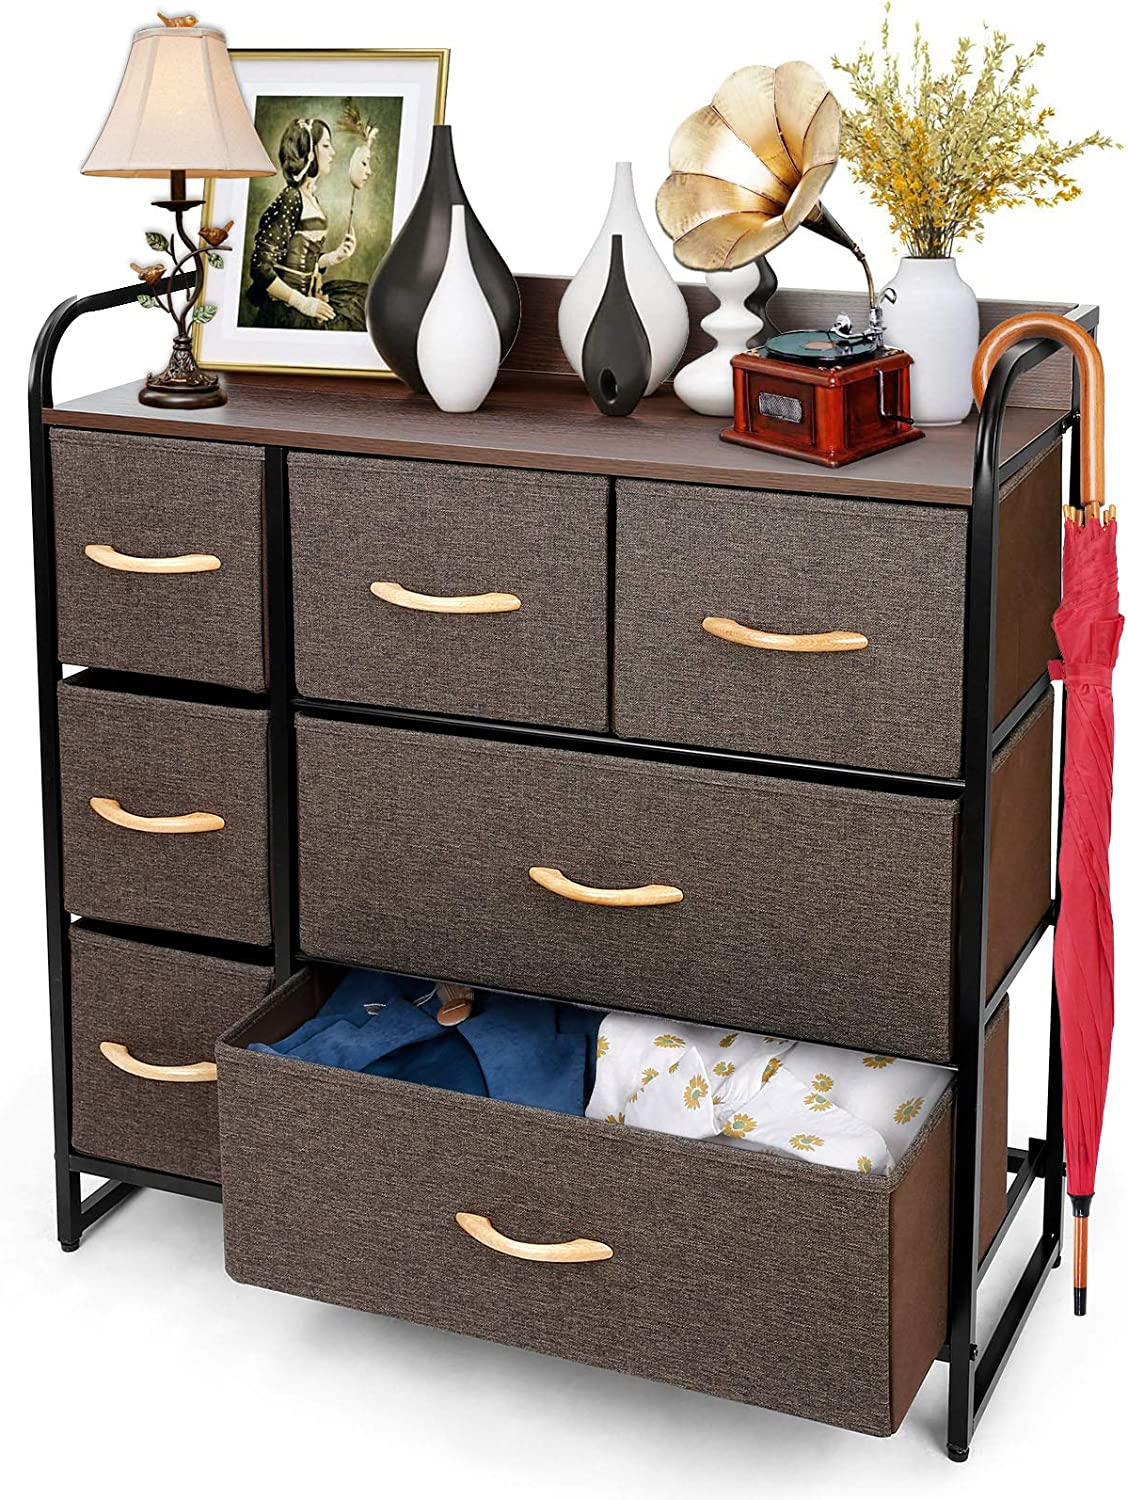 2. TUSY cheapest Gorgeous color Fabric drawer dresser.